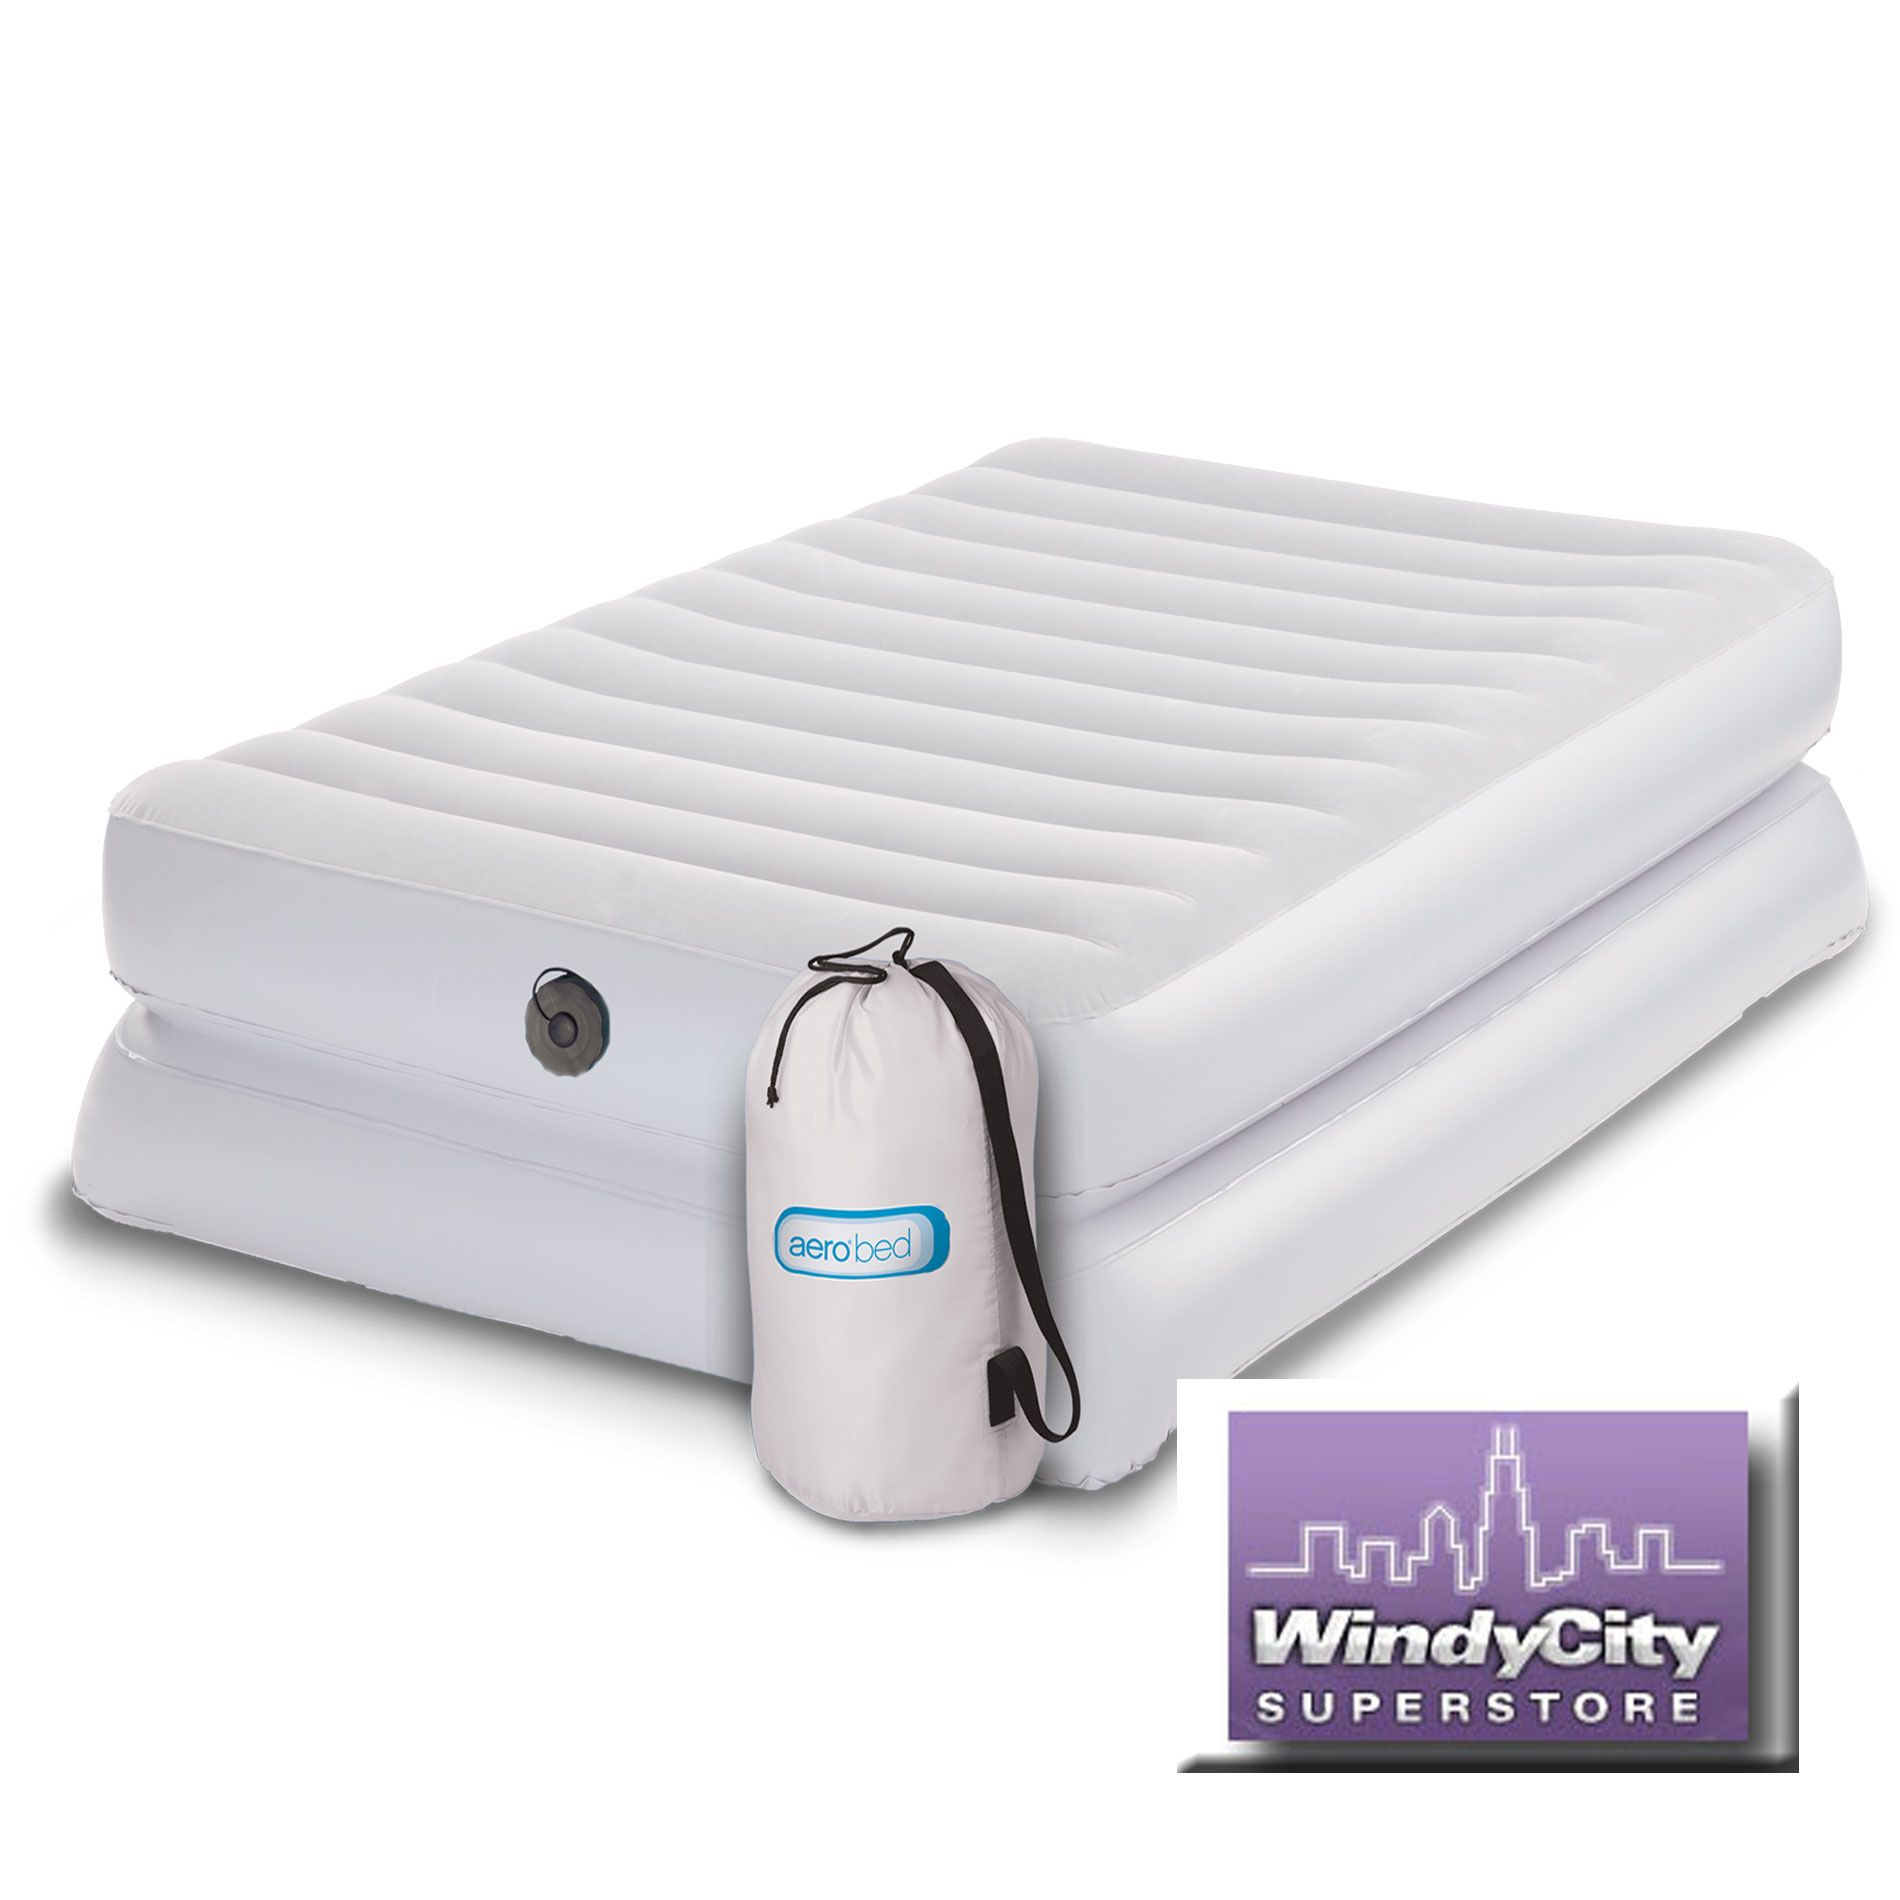 hei d details spin wid prod raised outlet air product mattress coleman sears op sharpen twin jsp bed